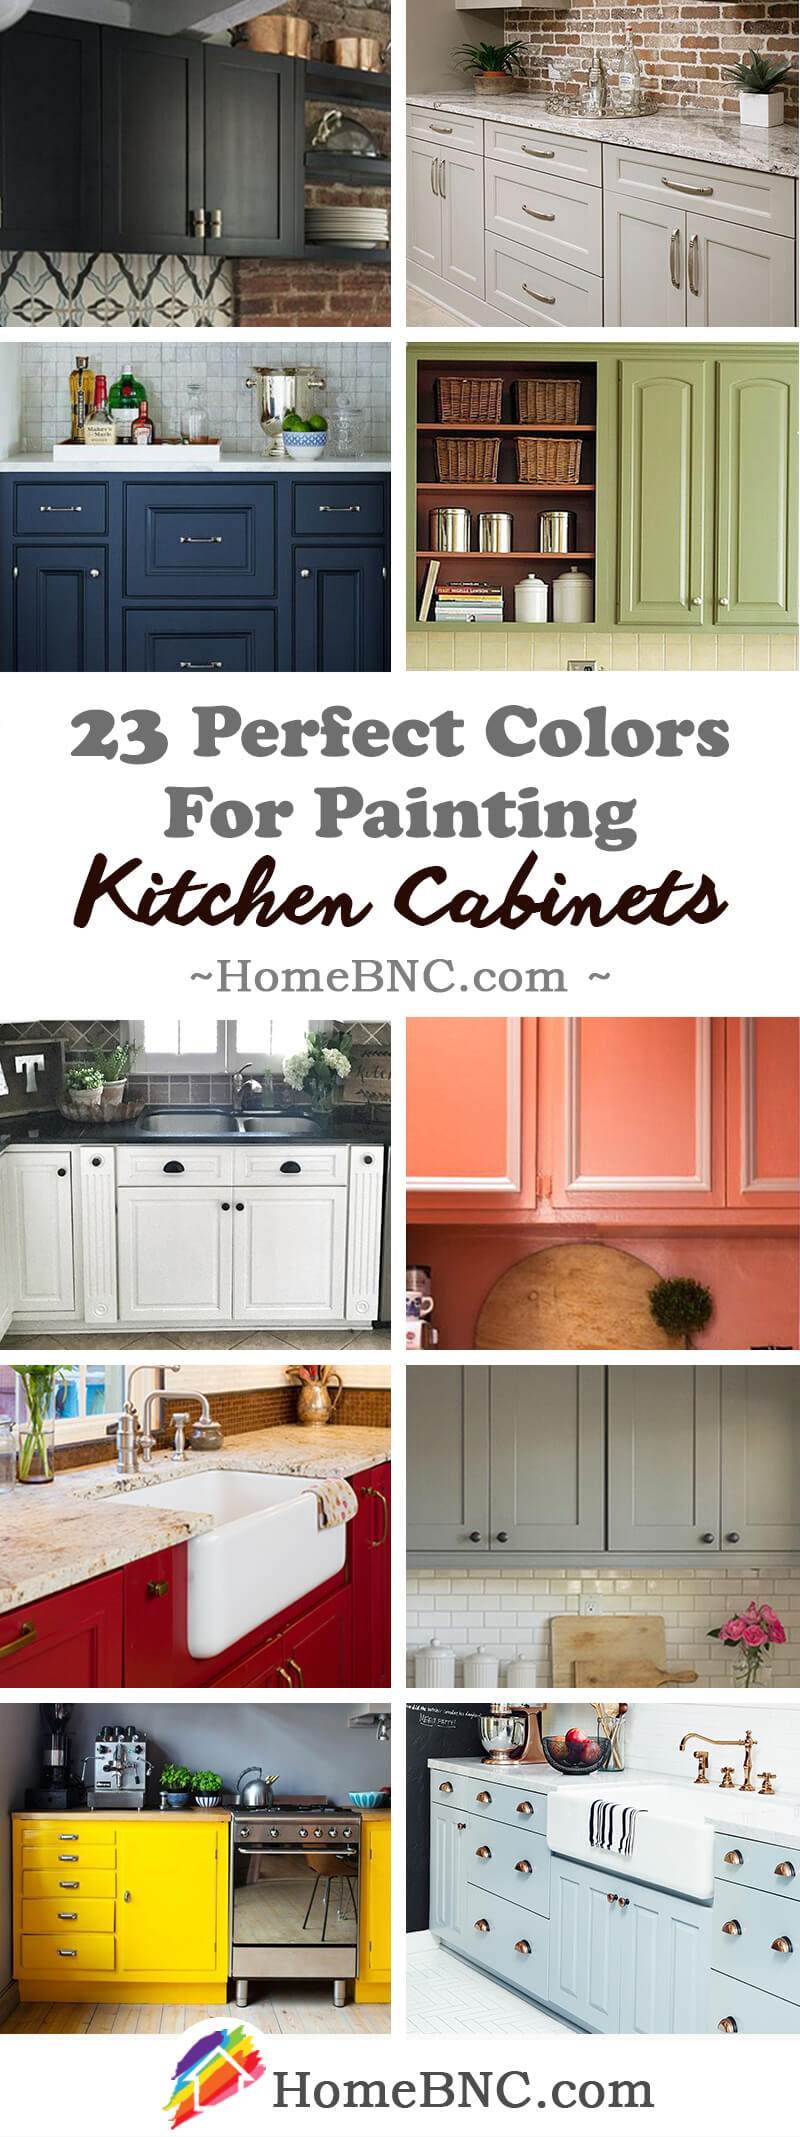 Kitchen Color Design Pictures 23 Best Kitchen Cabinets Painting Color Ideas And Designs For 2019